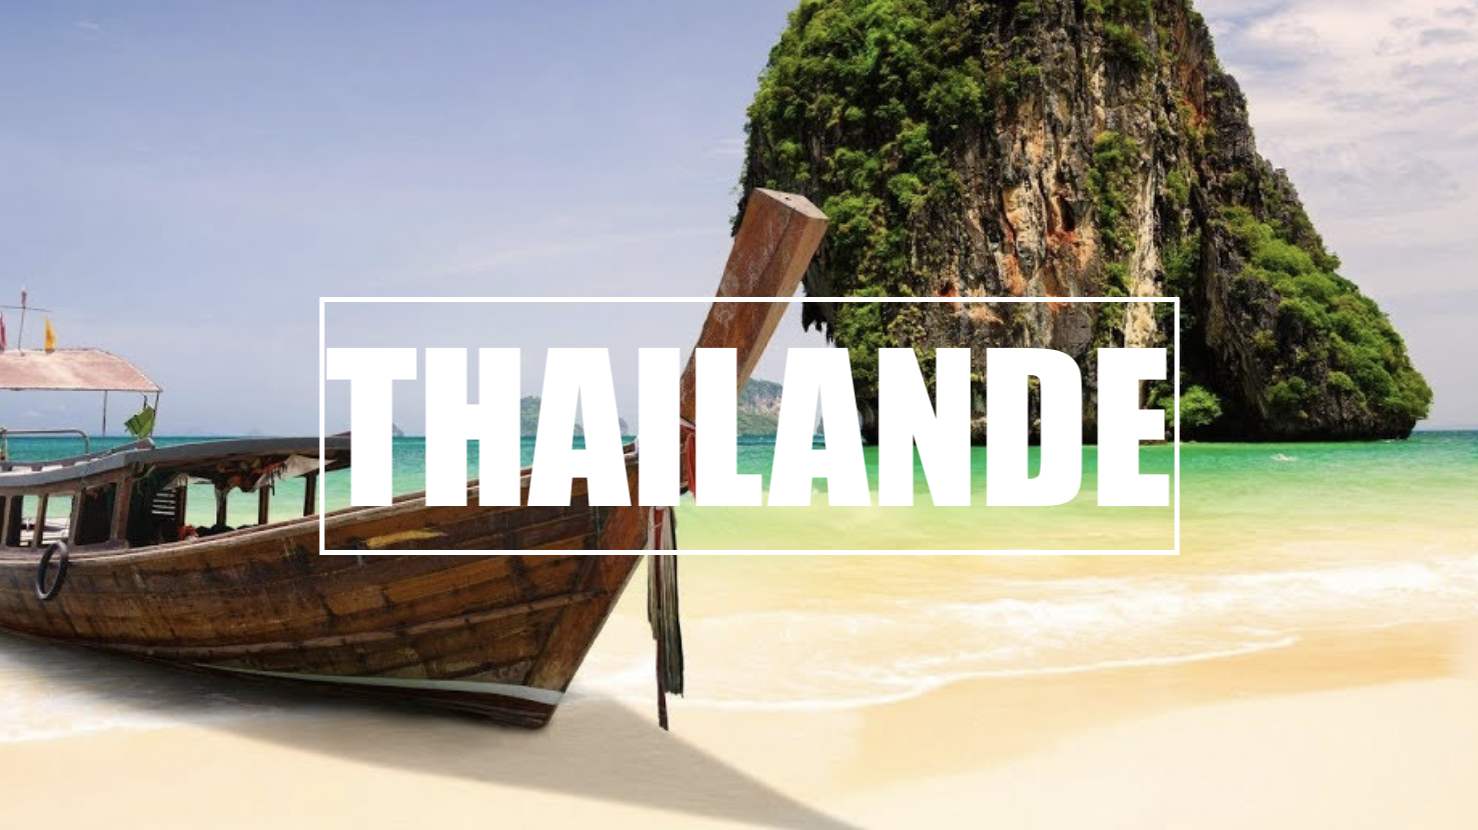 Production executive Thailande